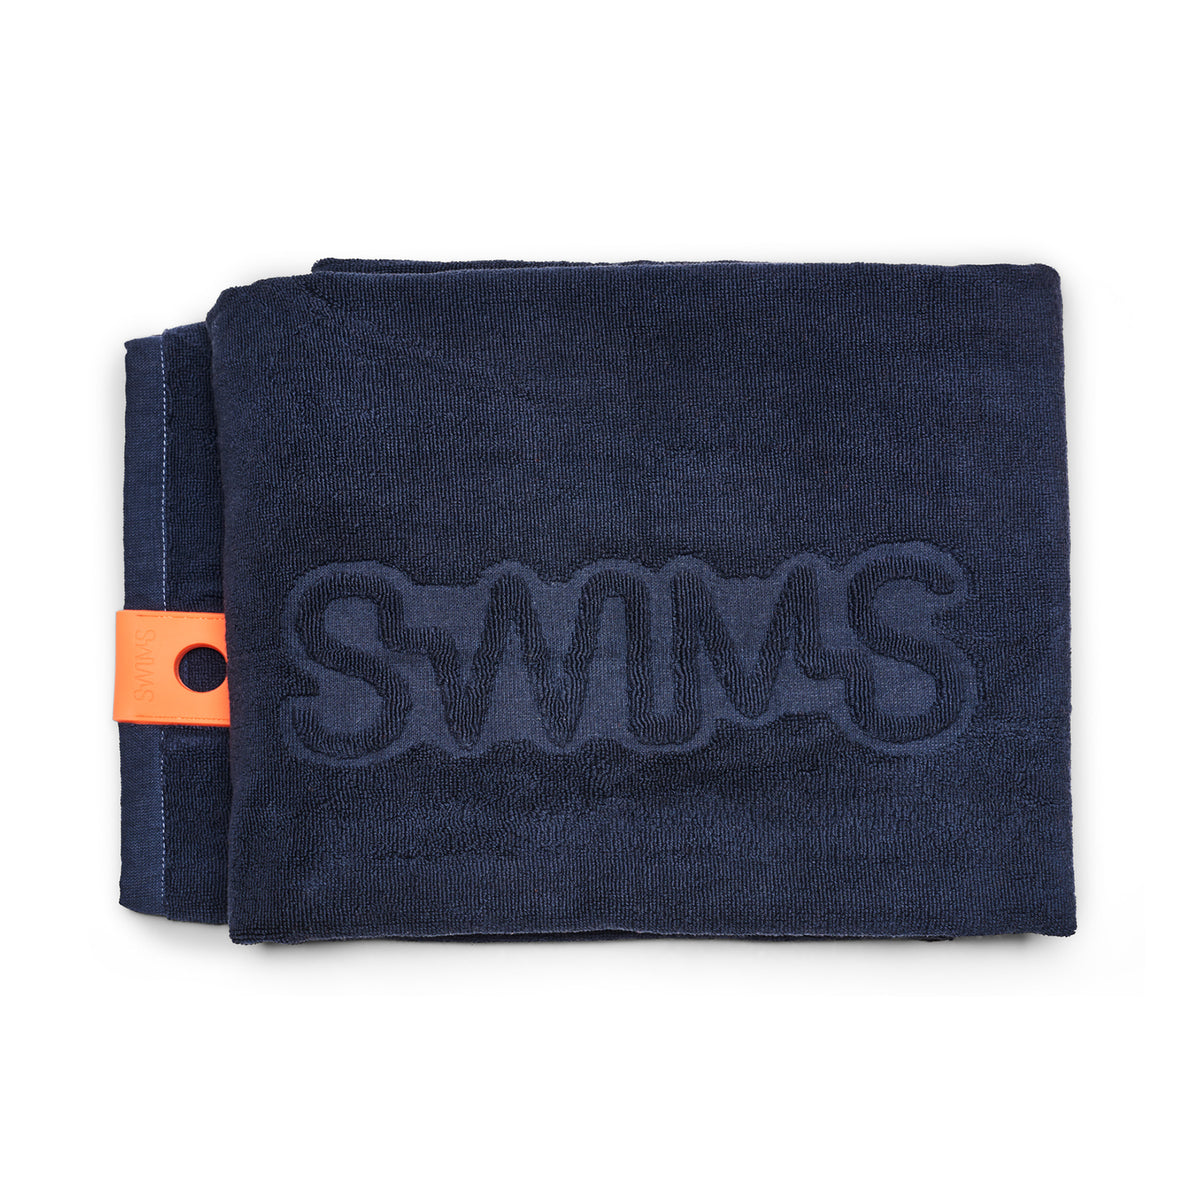 Towel - background::white,variant::Navy